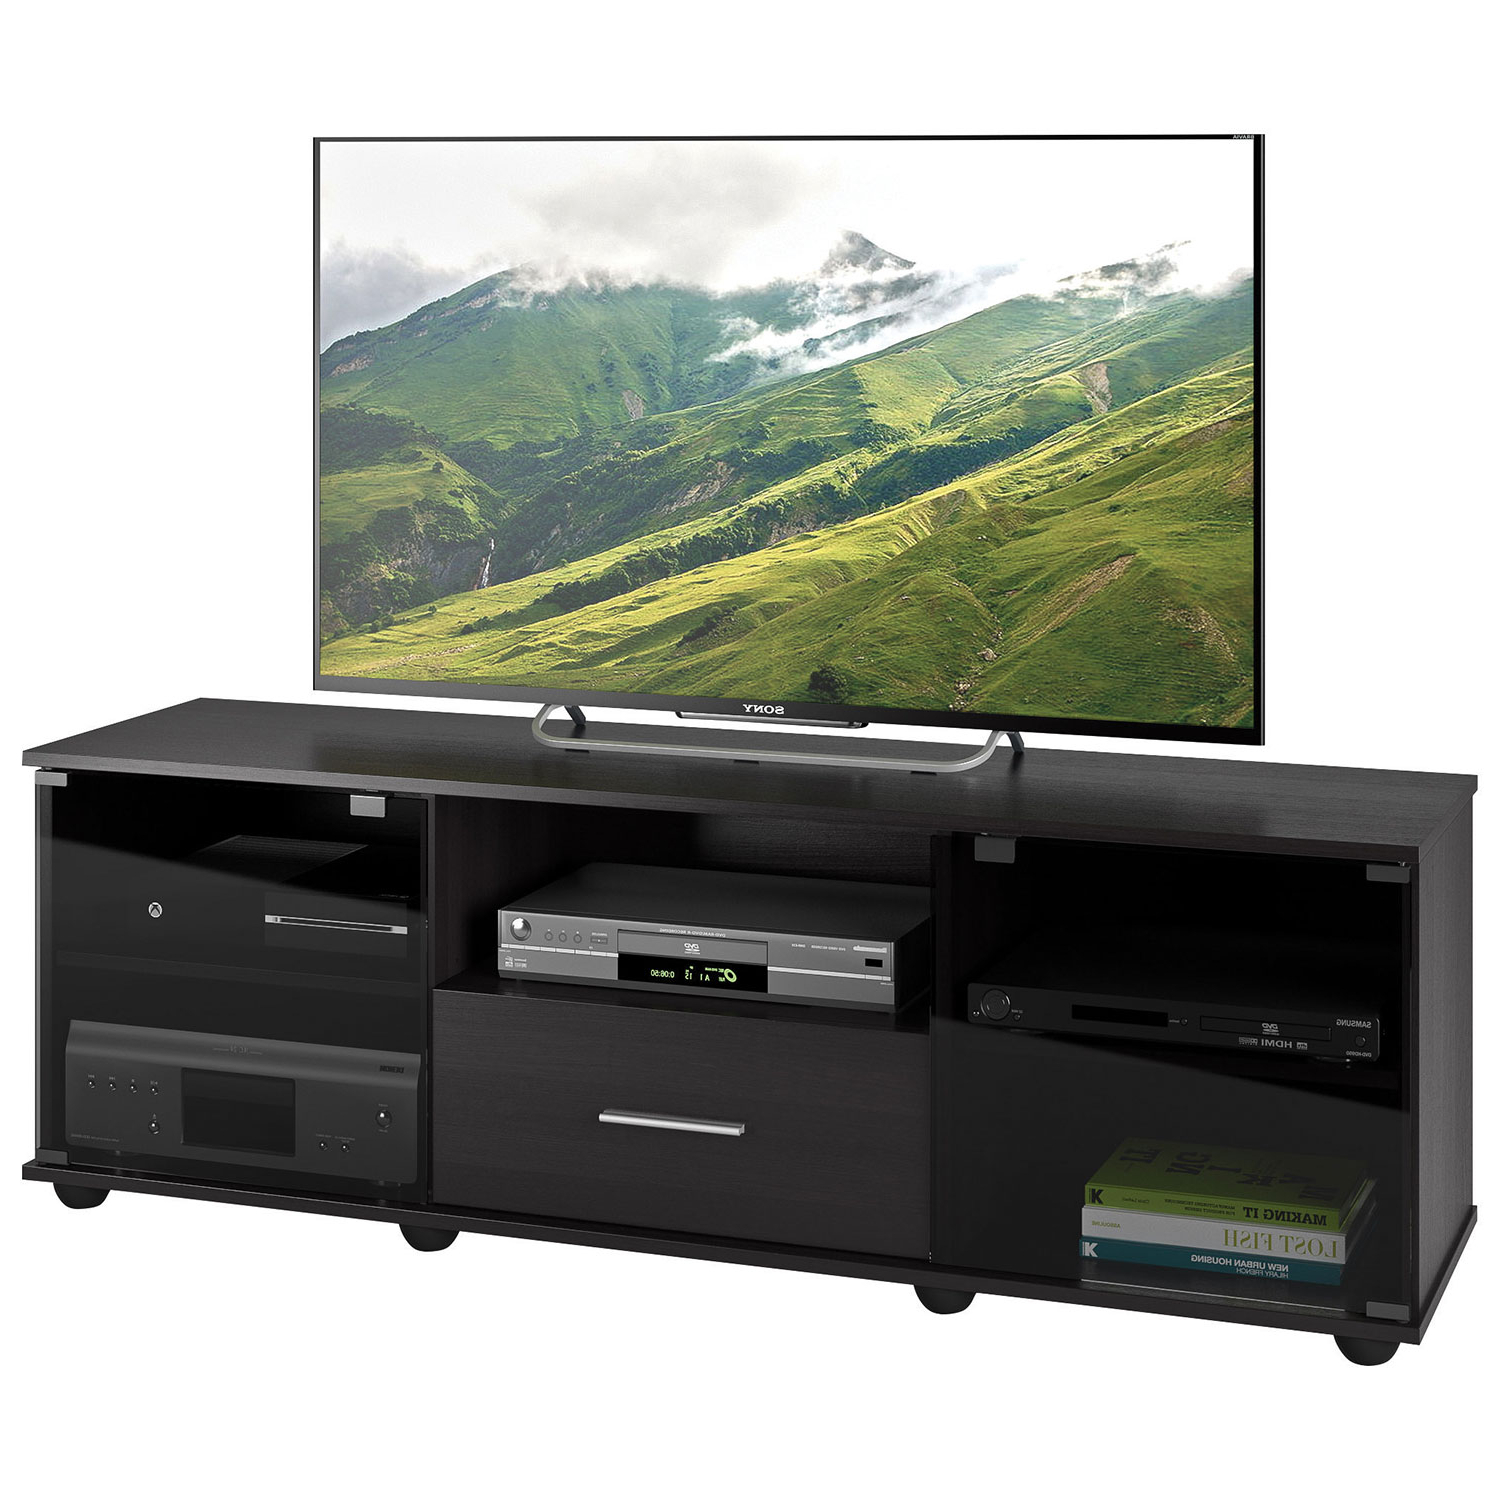 "Corliving Fernbrook 70"" Tv Stand – Black : Tv Stands – Best Buy Canada Pertaining To Valencia 60 Inch Tv Stands (Gallery 6 of 20)"